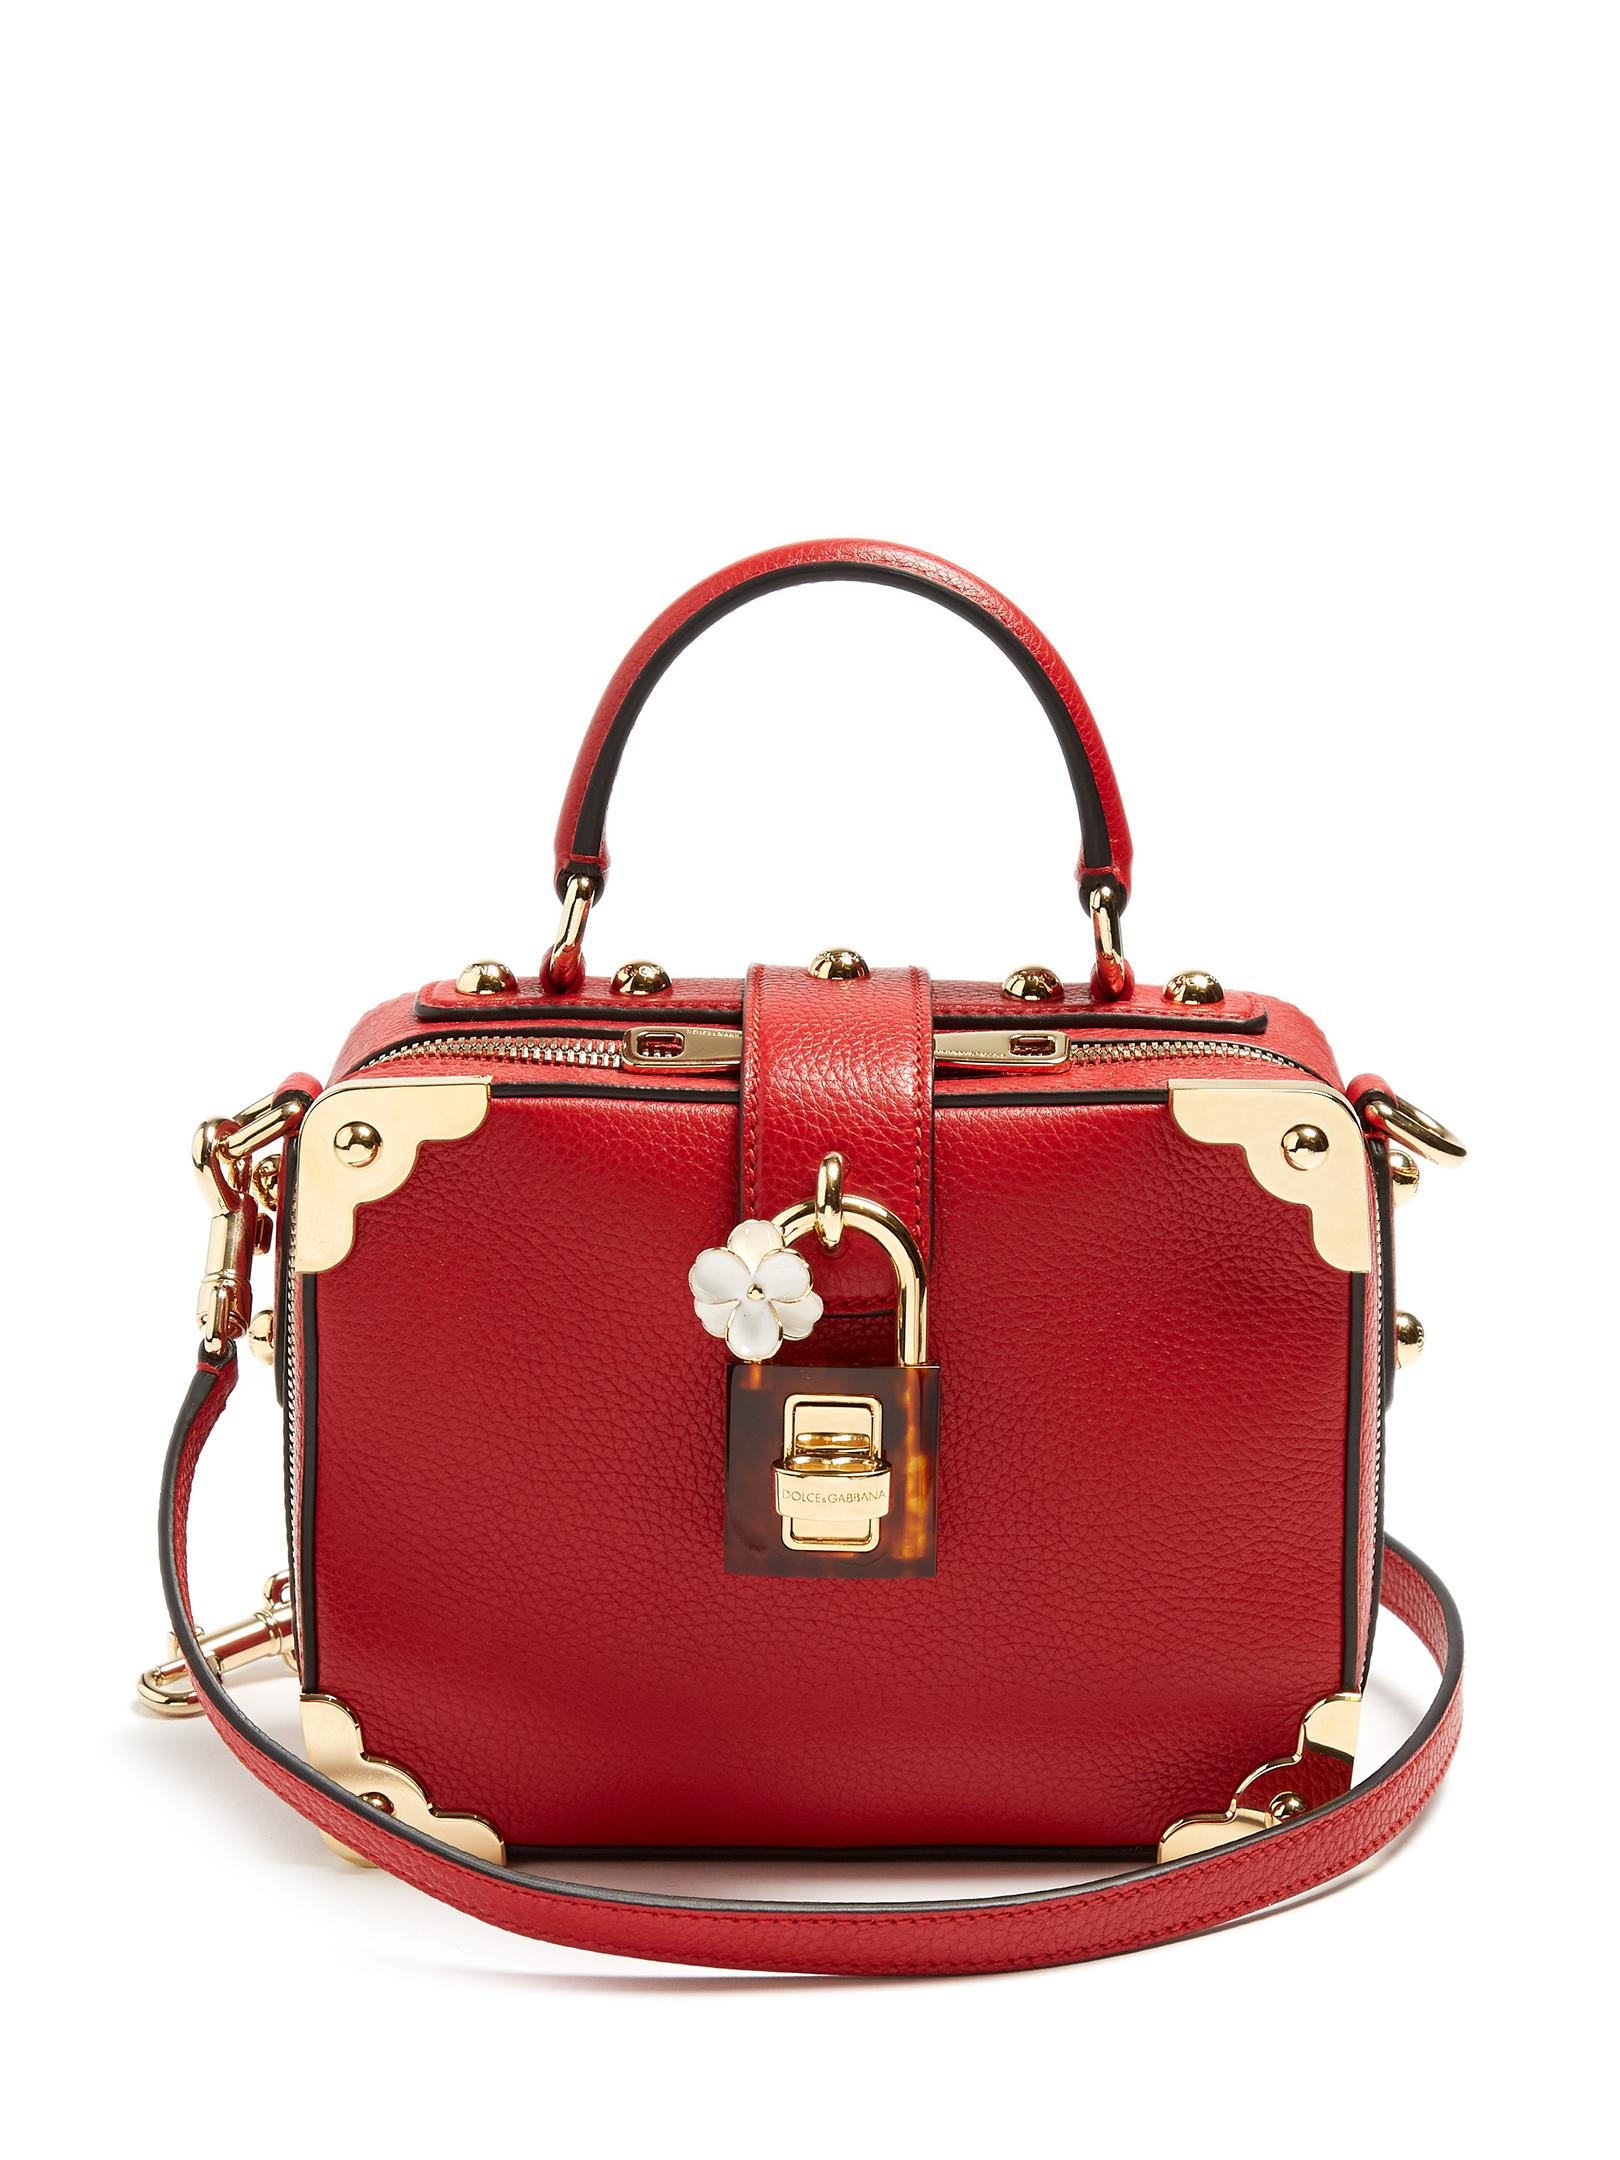 76b2a7e627 Lyst - Dolce   Gabbana Dolce Soft Grained-leather Box Bag in Red